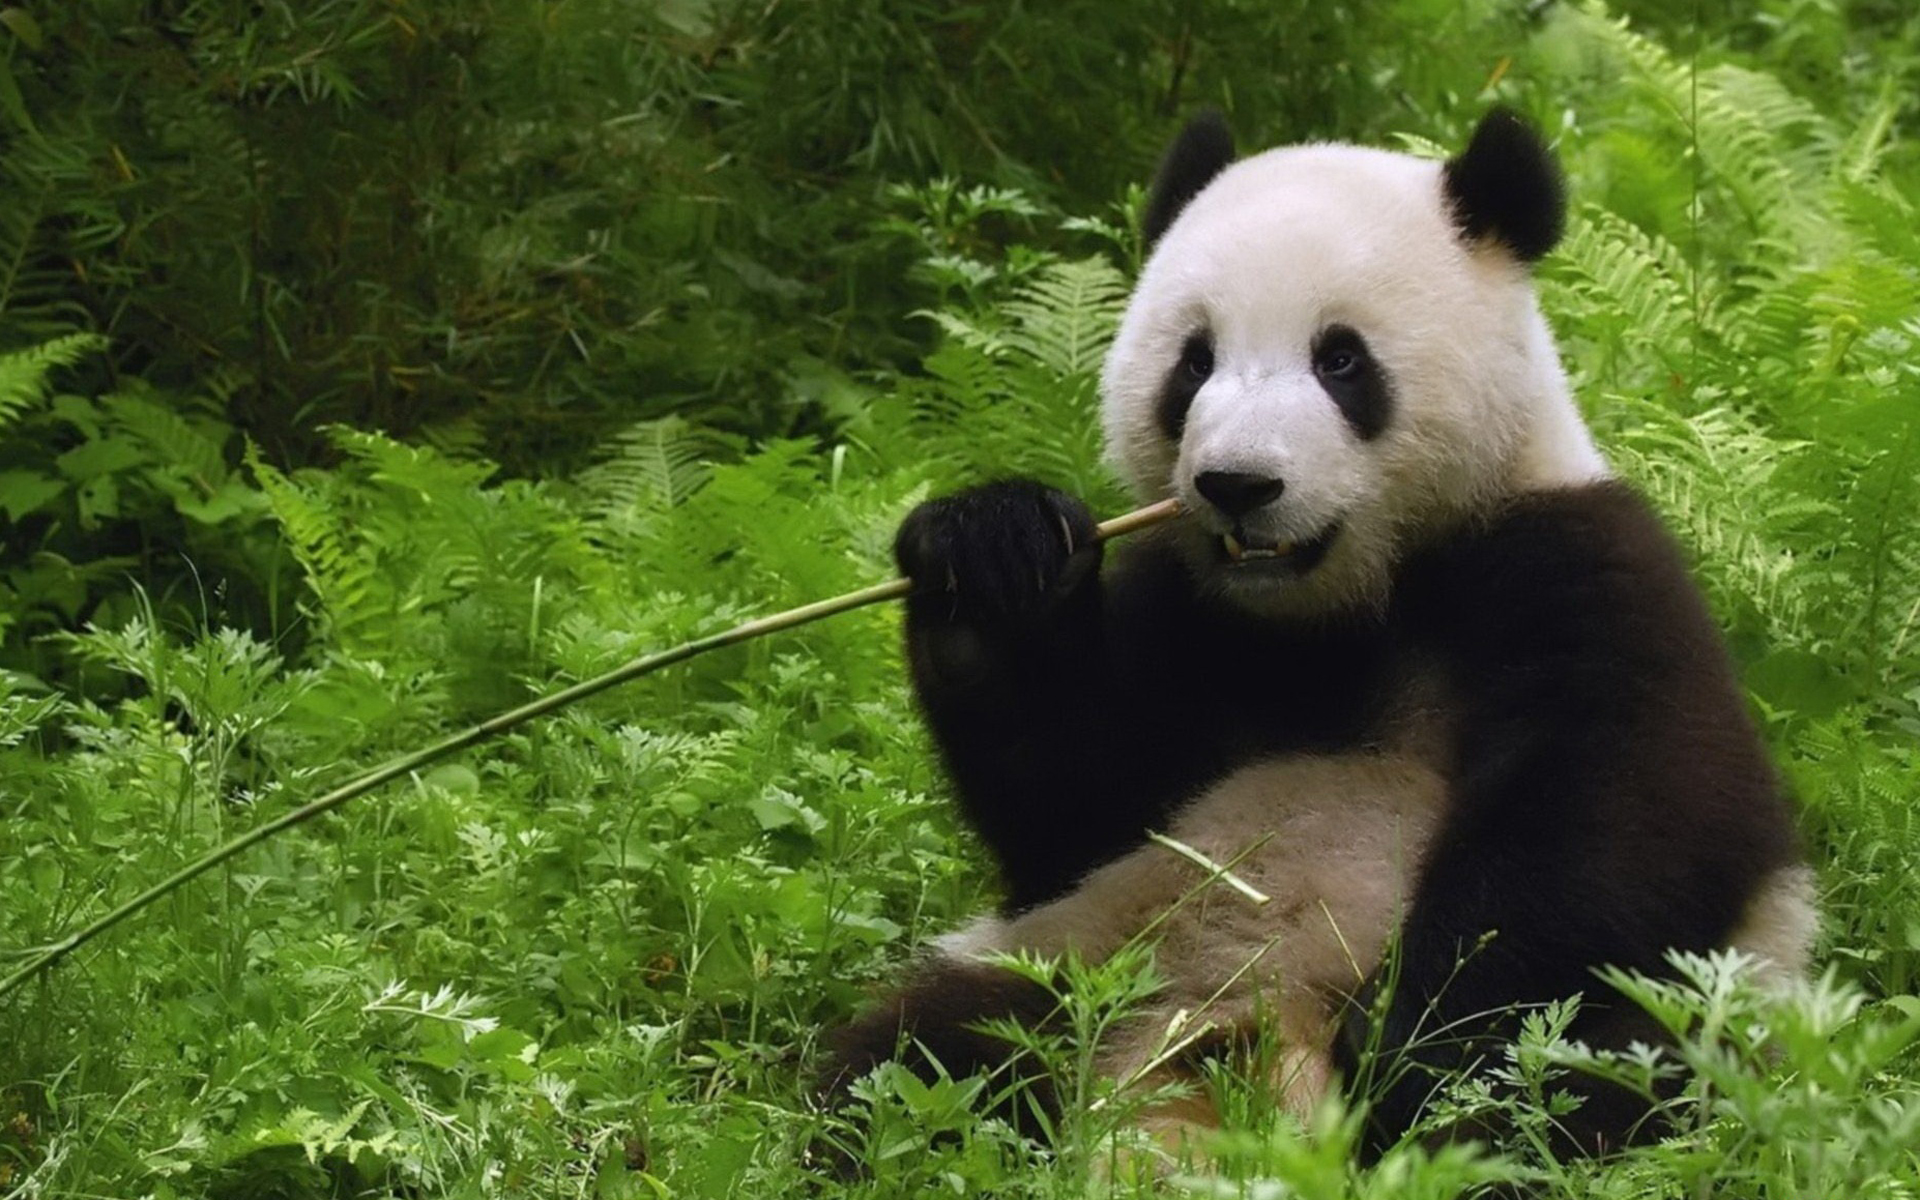 climate change is the biggest hurdle for reintroducing panda